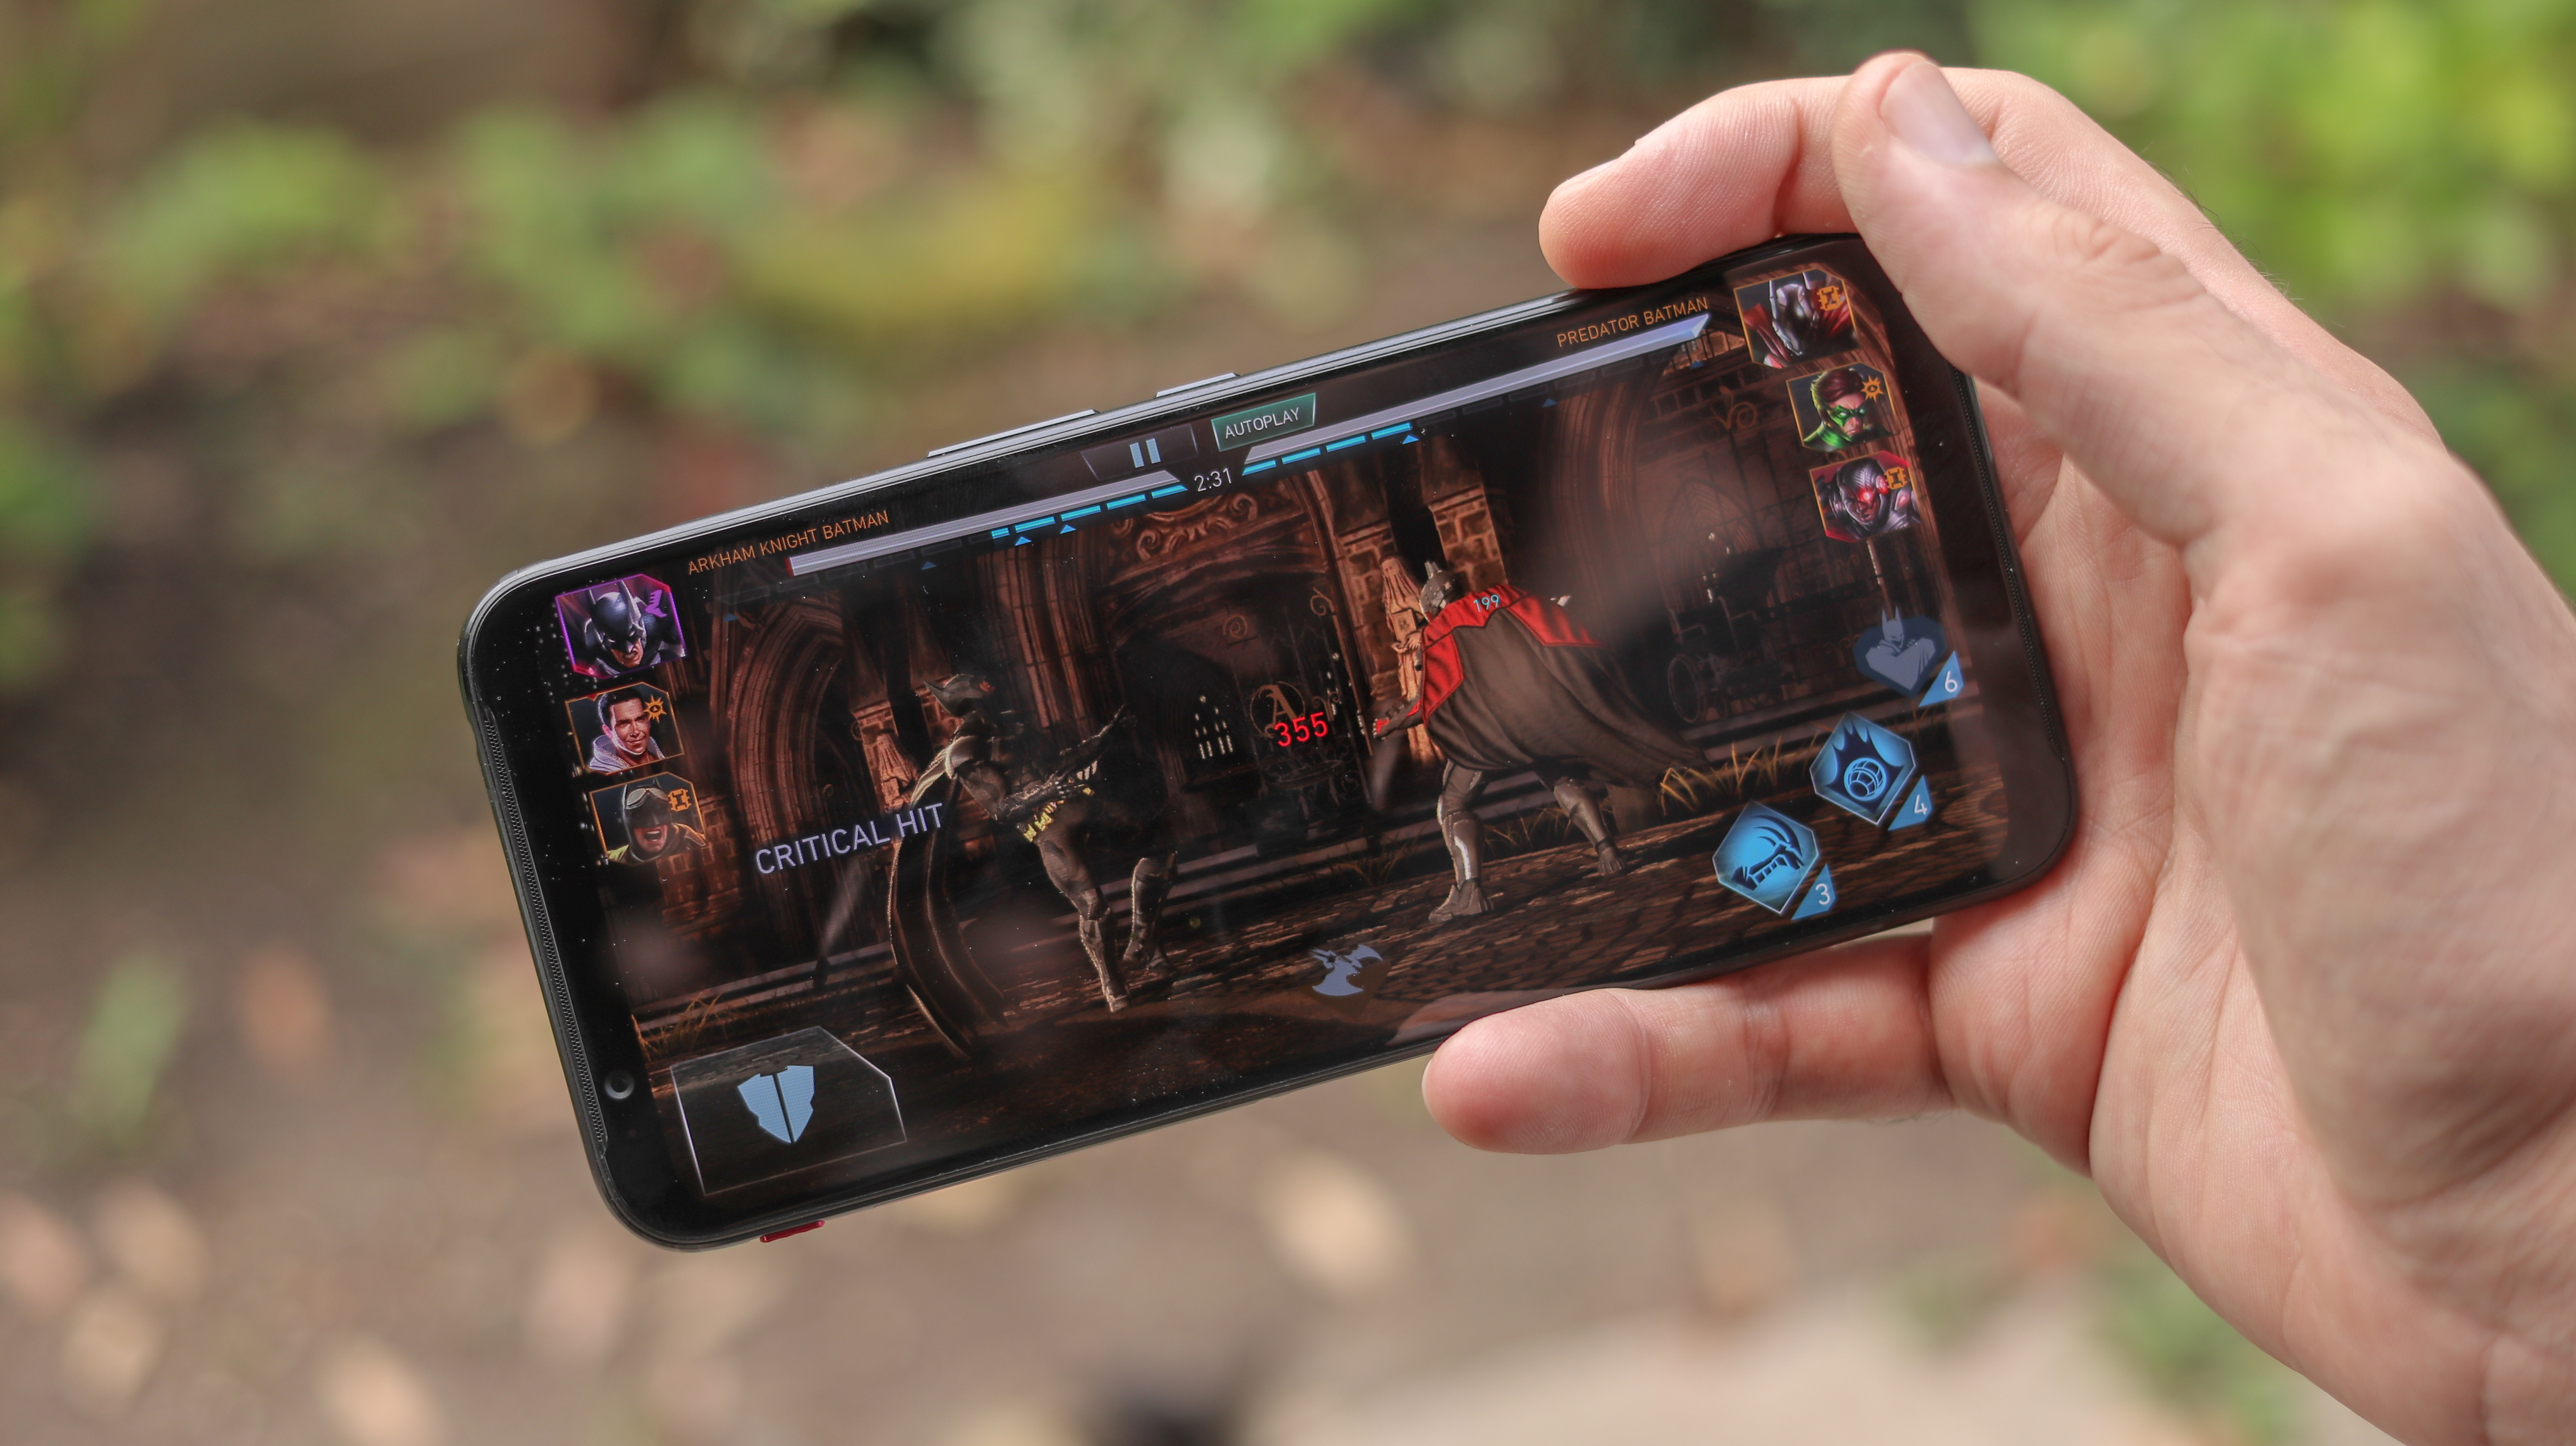 The next Nubia Red Magic gaming phone will support 5G and pack a 144Hz display